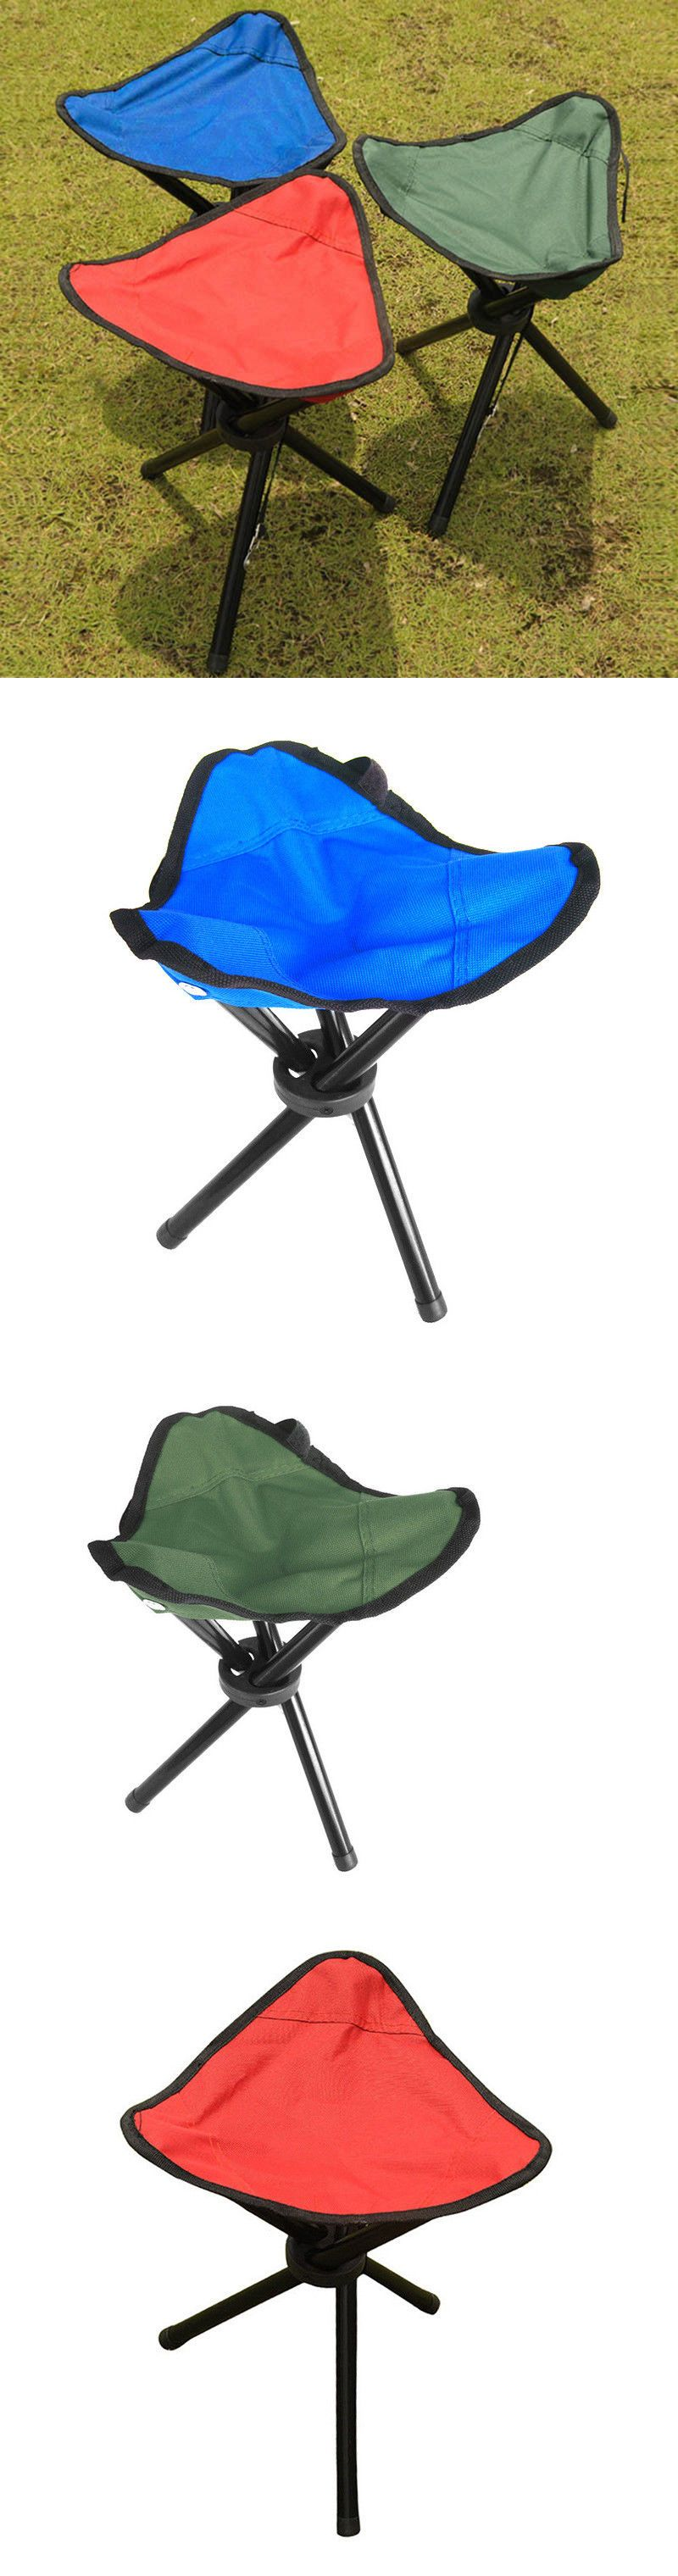 fishing chair rain cover side end table chairs and seats 19985 portable folding outdoor camping hiking hunting seat picnic buy it now only 14 15 on ebay